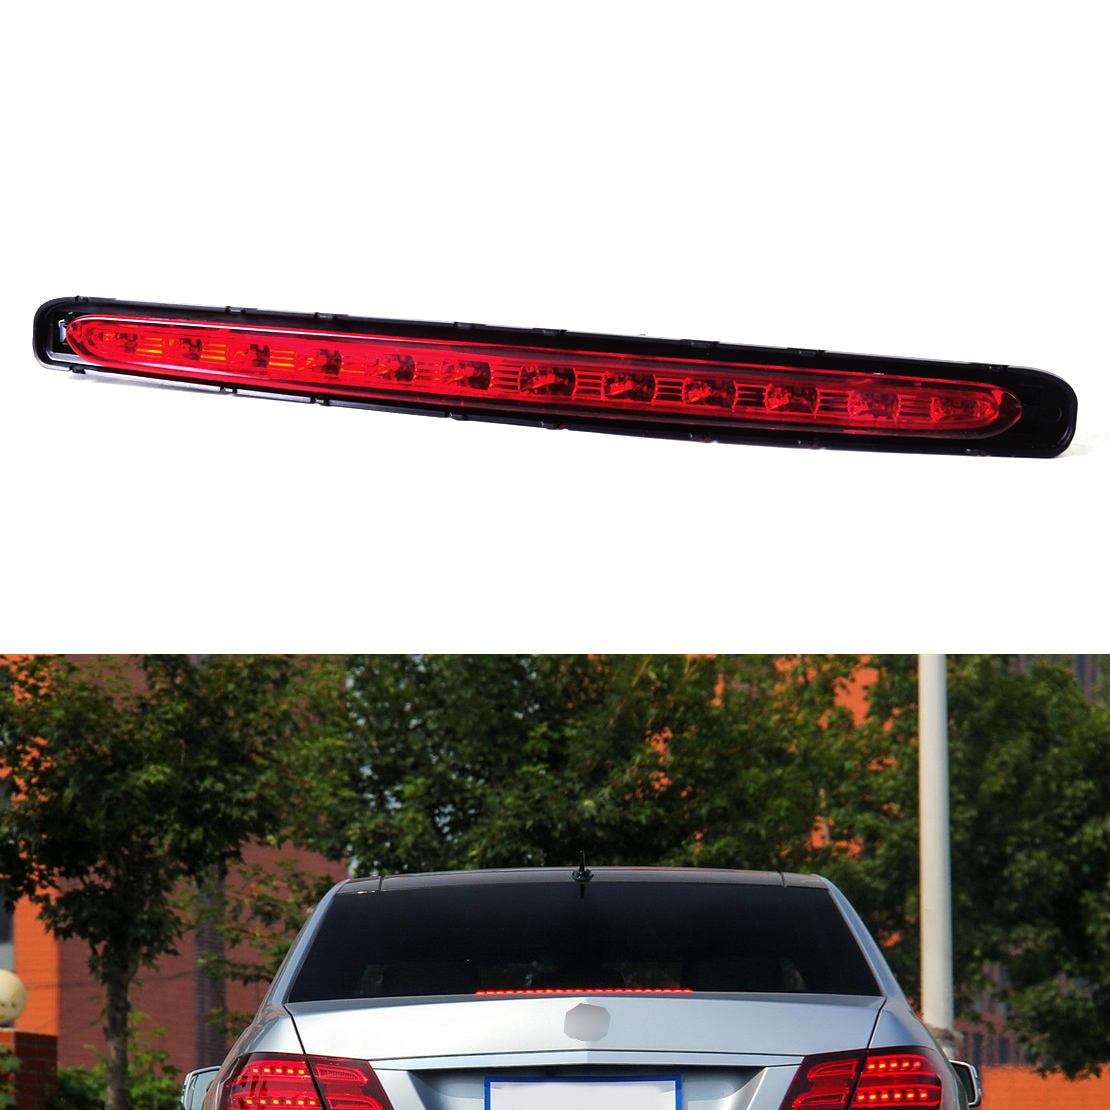 DWCX 2118201556 Car Rear LED Third Stop Brake Light Lamp for Mercedes Benz E Class W211